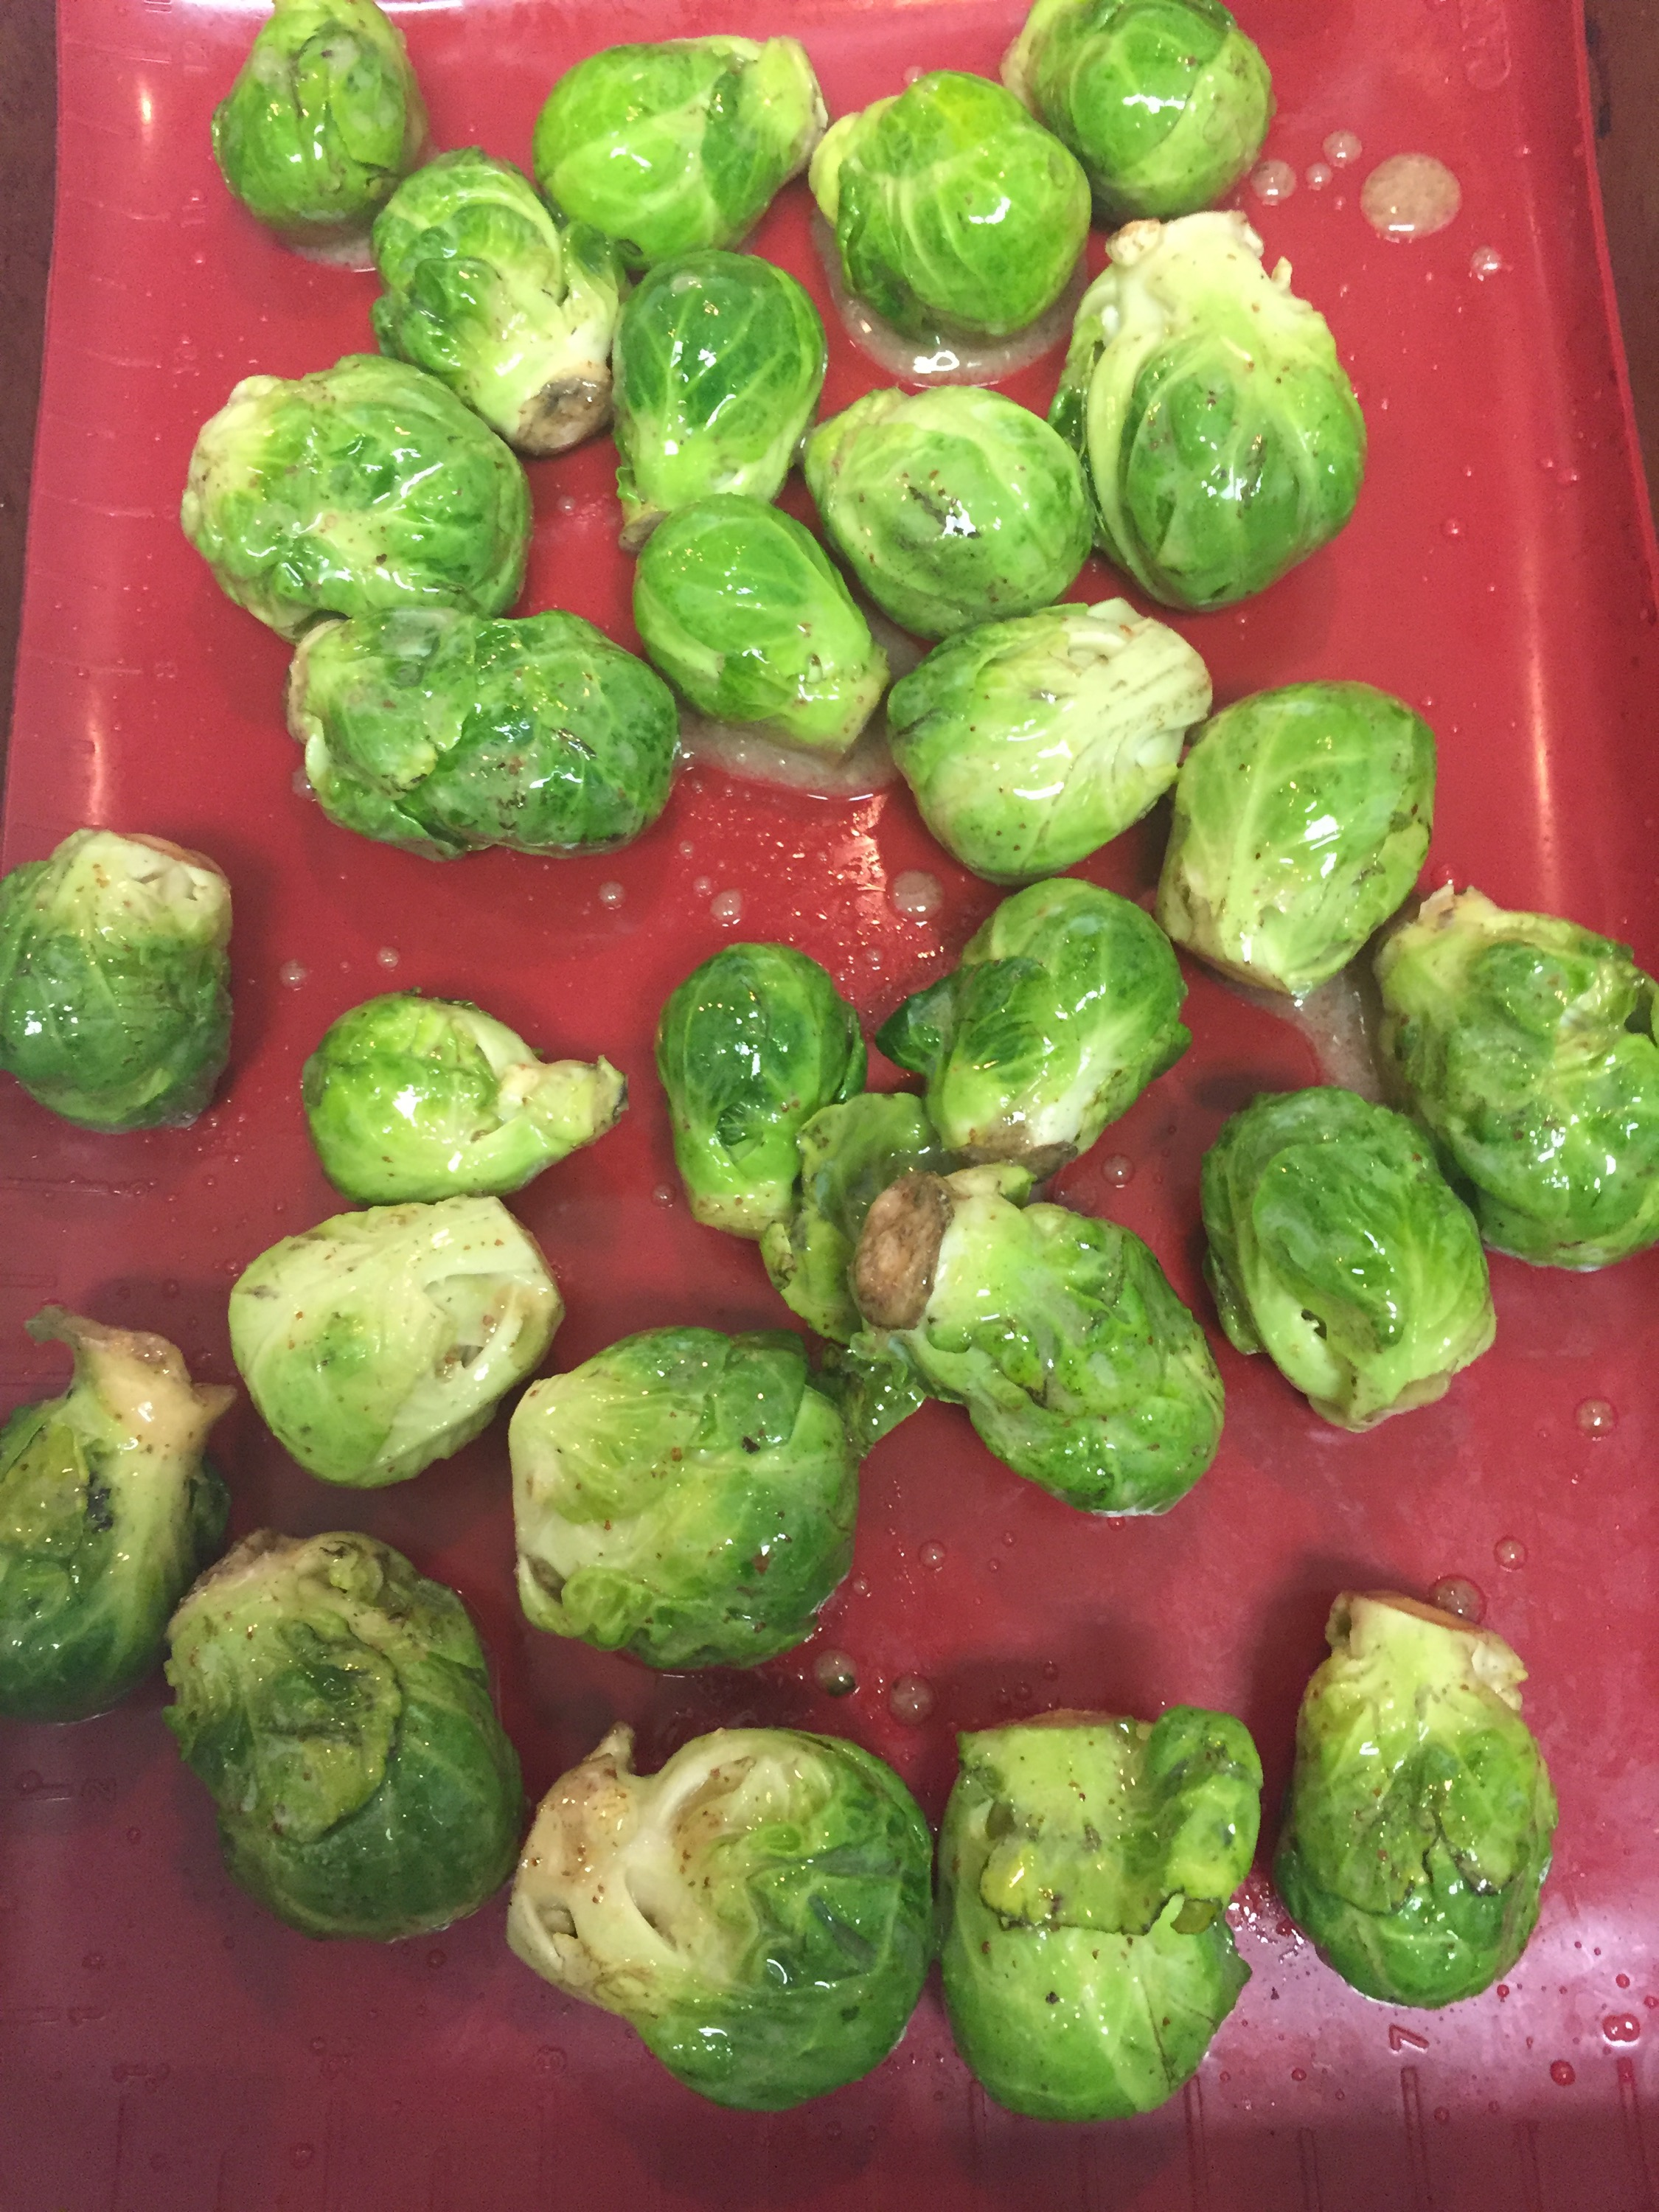 1 pound brussel sprouts